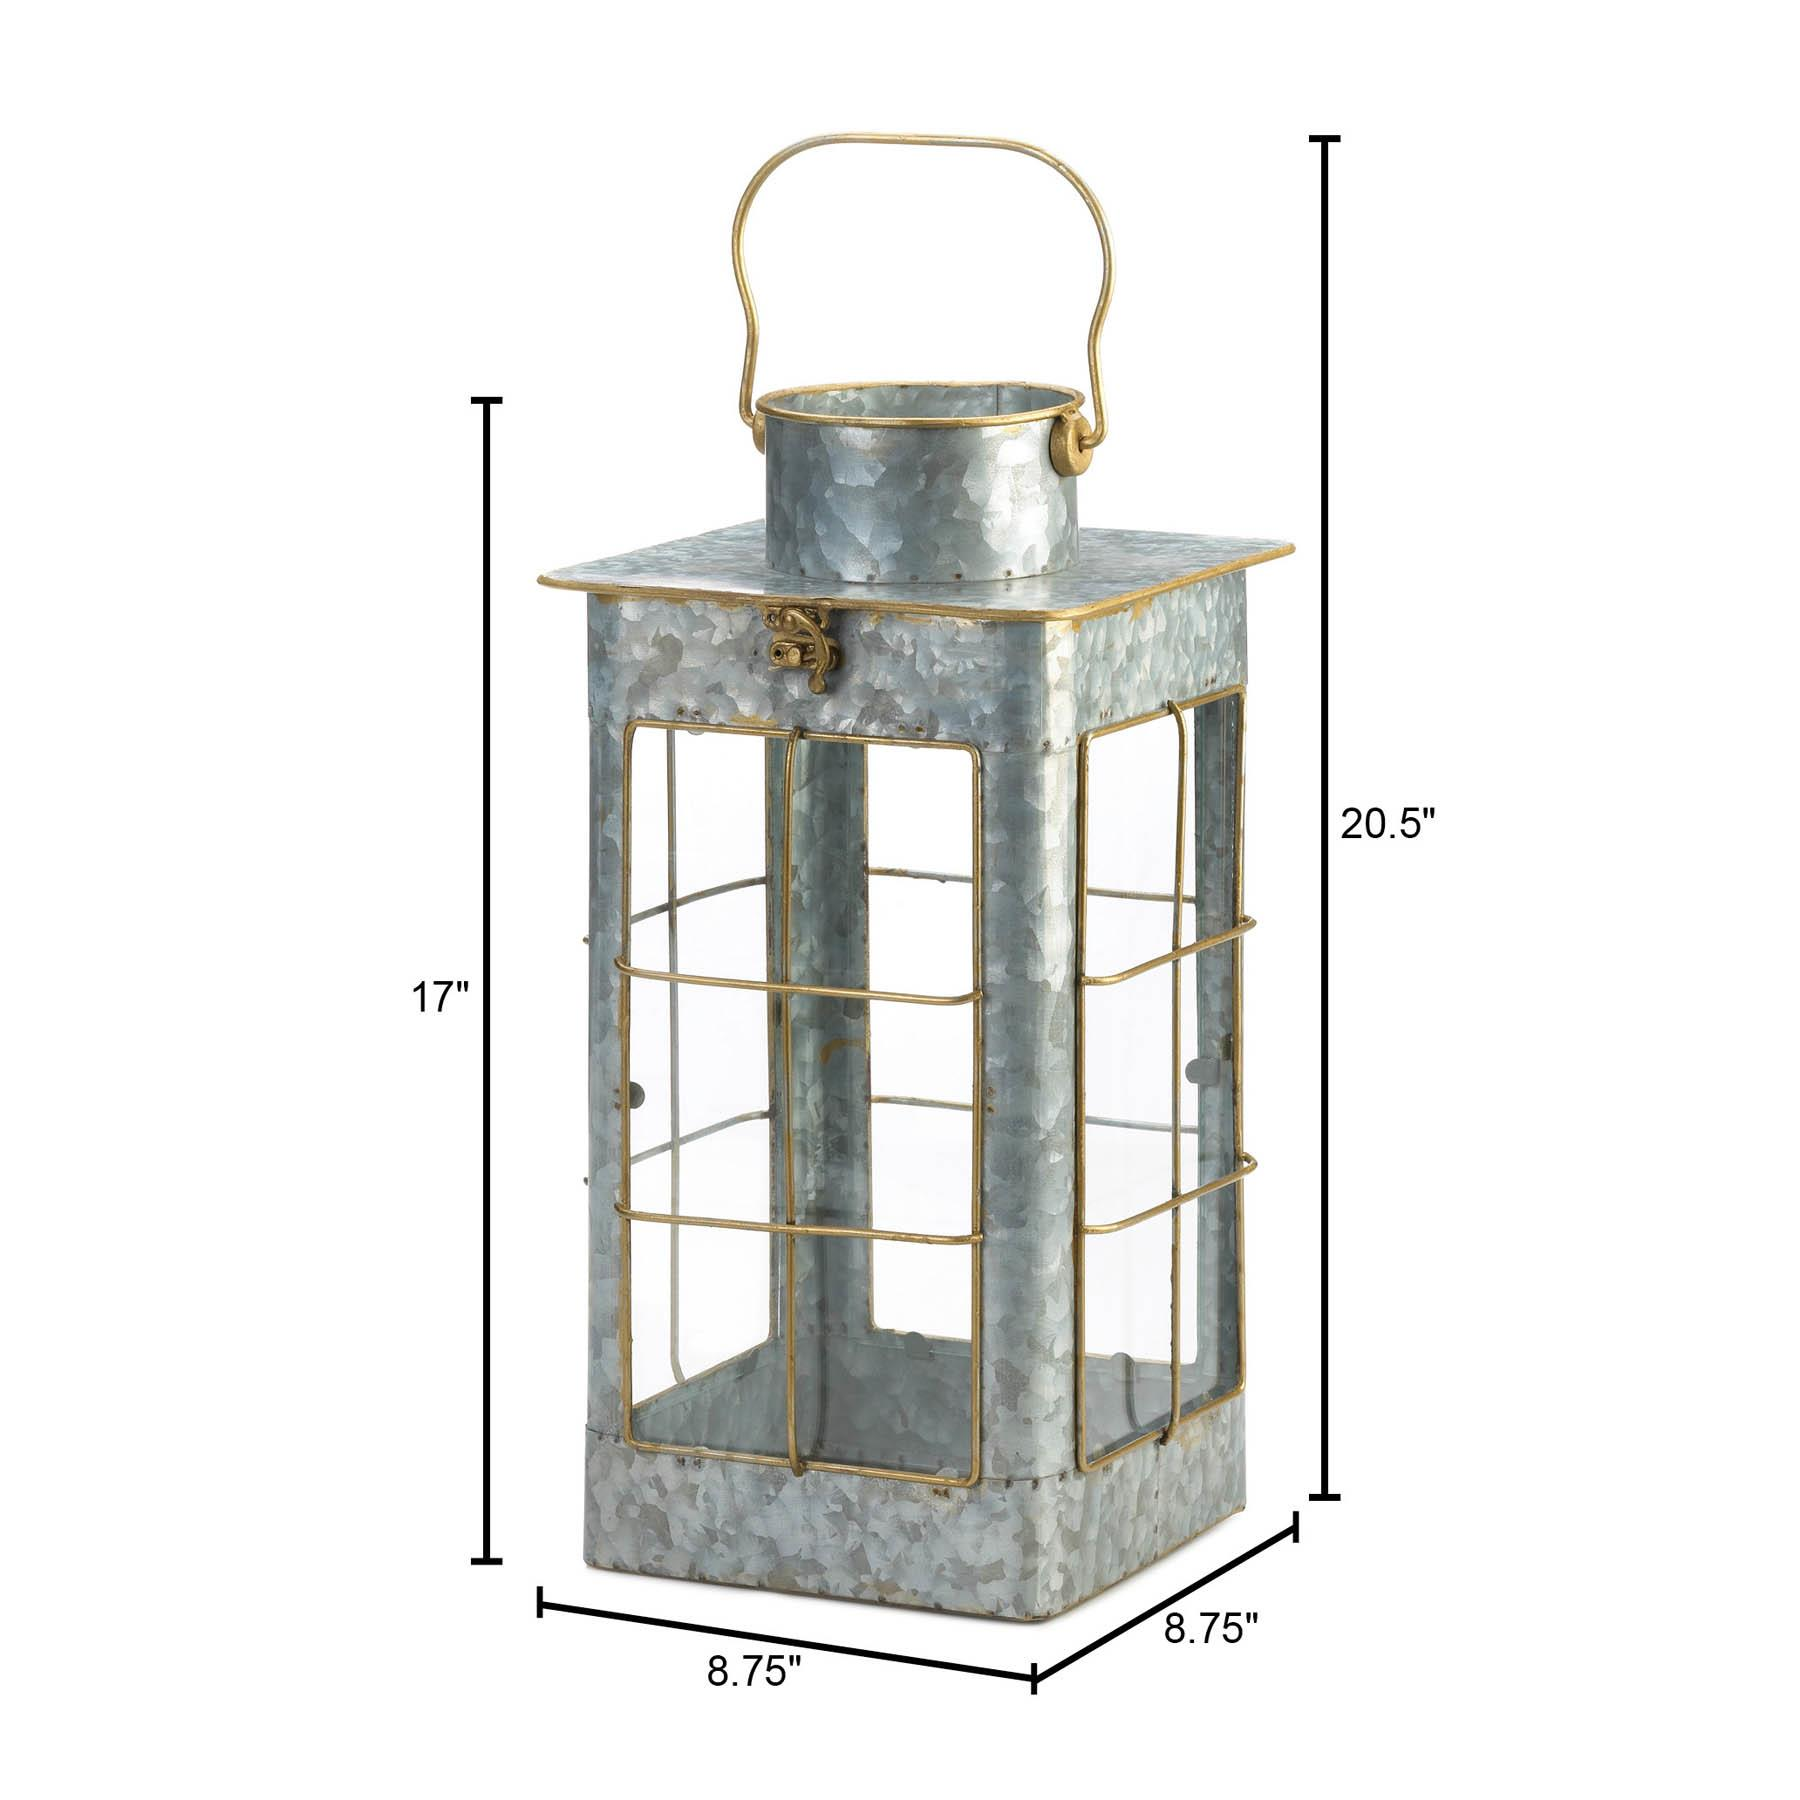 FARMHOUSE GALVANIZED LANTERN 10018640